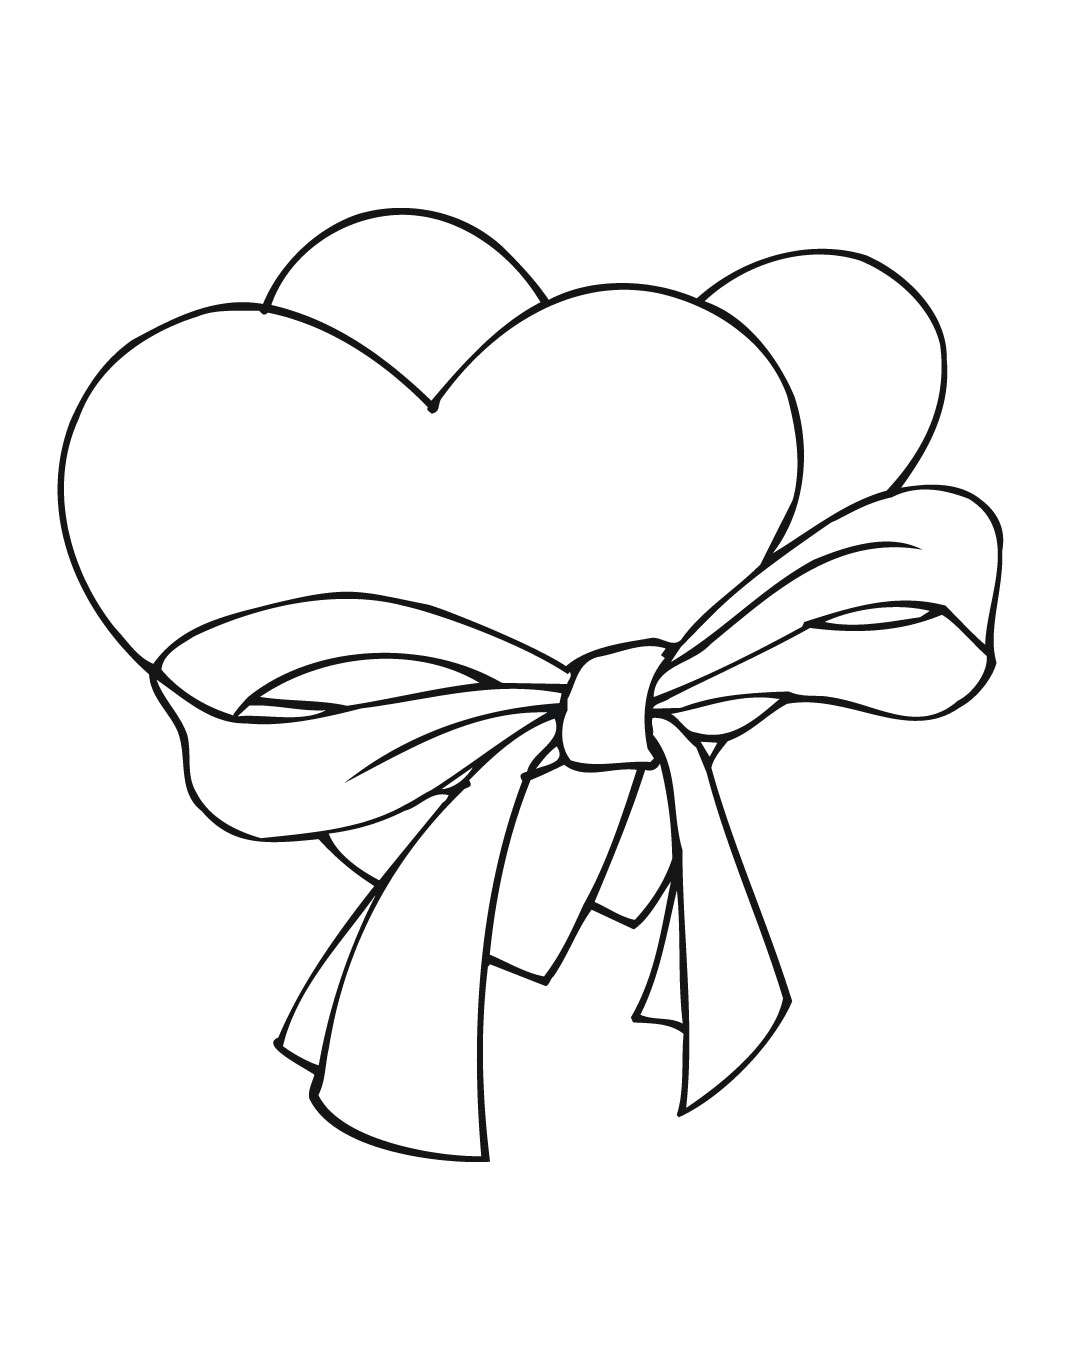 Clip Art Cute Heart Coloring Pages free printable heart coloring pages for kids kids